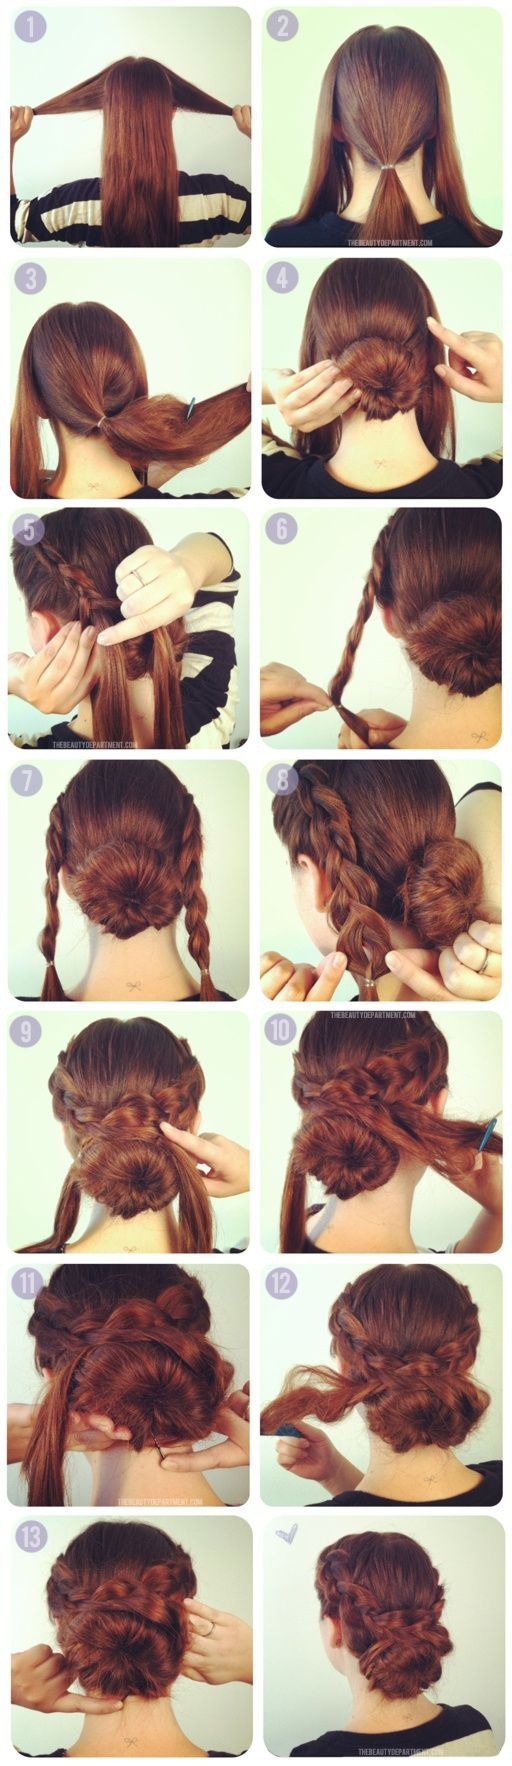 Youre not doomed to a boring ponytail for your night out there we love a chic hair bun and the styles are endless weve rounded up some of our favorite bun hairstyles to wear this season solutioingenieria Choice Image